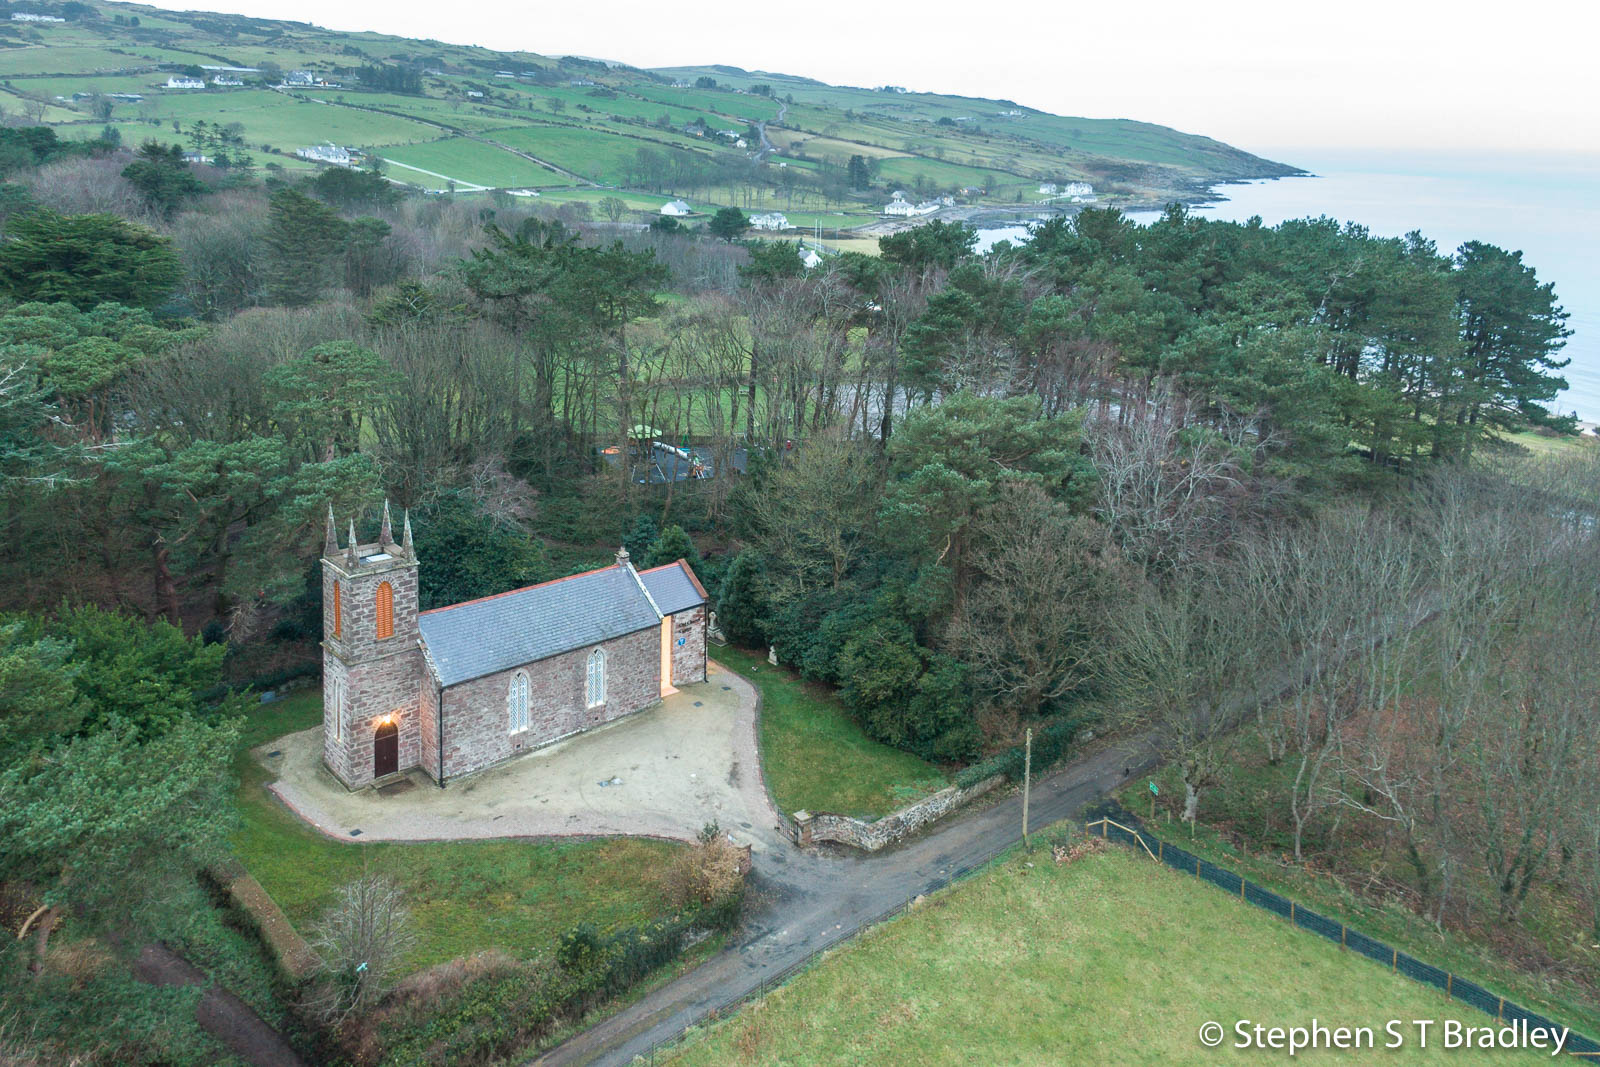 Aerial drone photography and video production services Dublin and Ireland portfolio - The Old Church Centre, Cushendun, aerial photo 0008